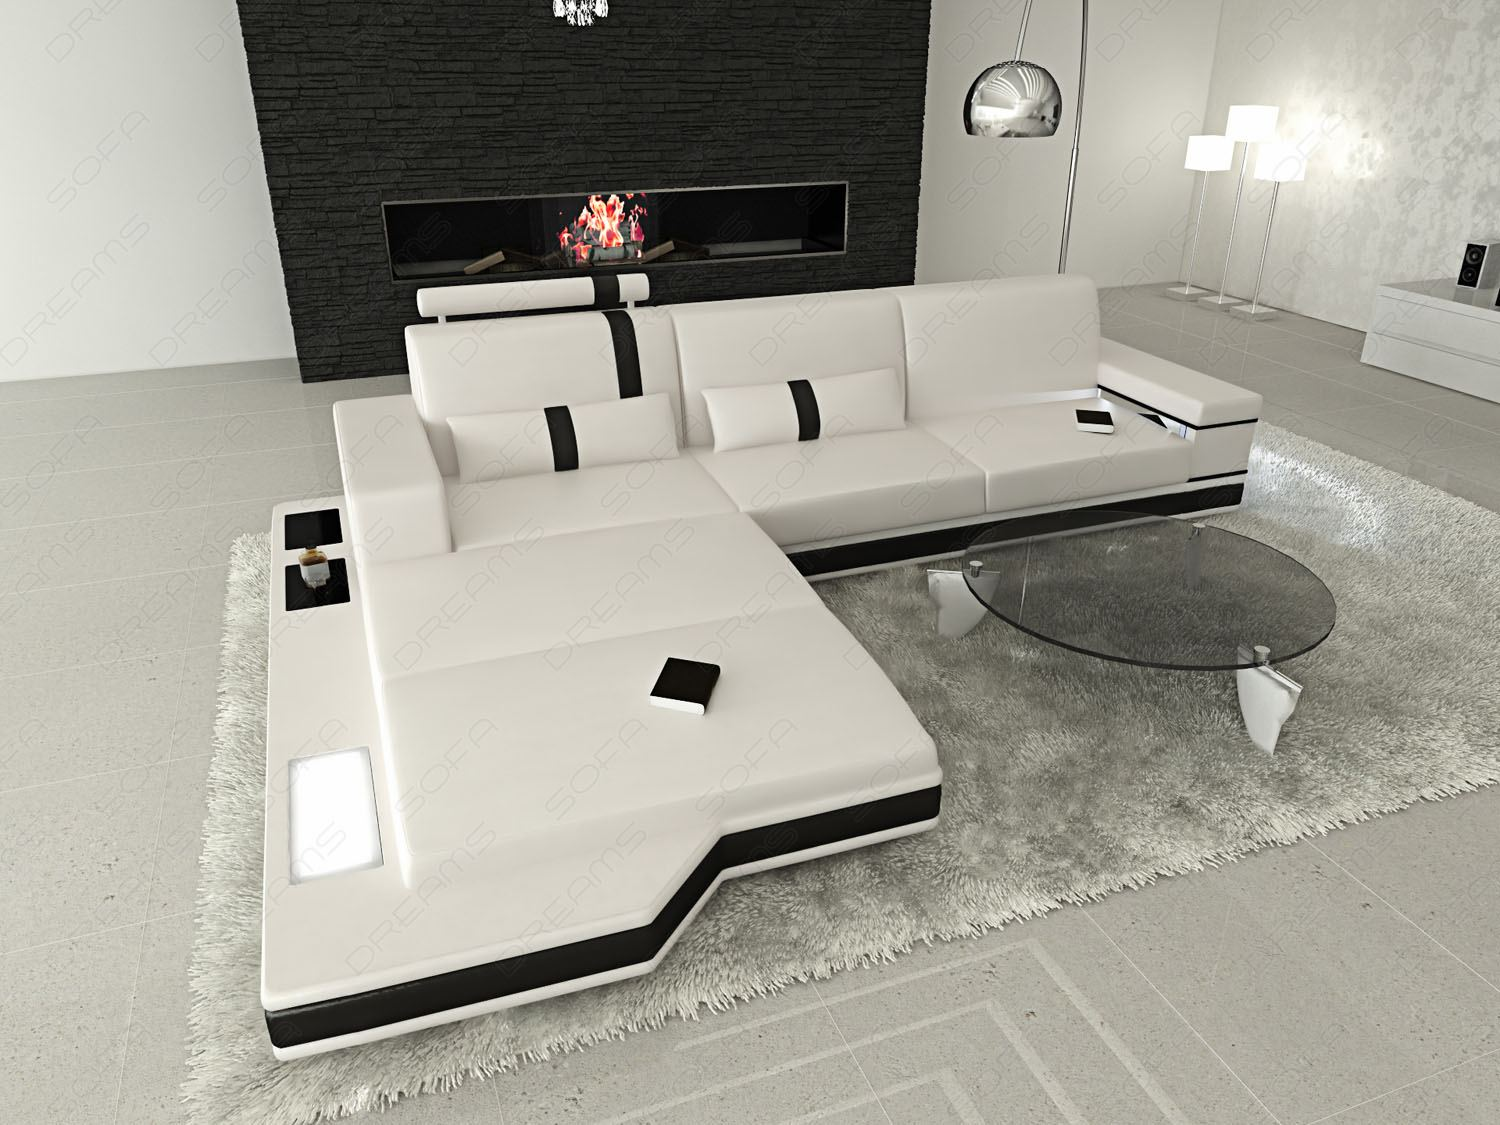 leather sofa messana l shaped designer coach upholstered. Black Bedroom Furniture Sets. Home Design Ideas